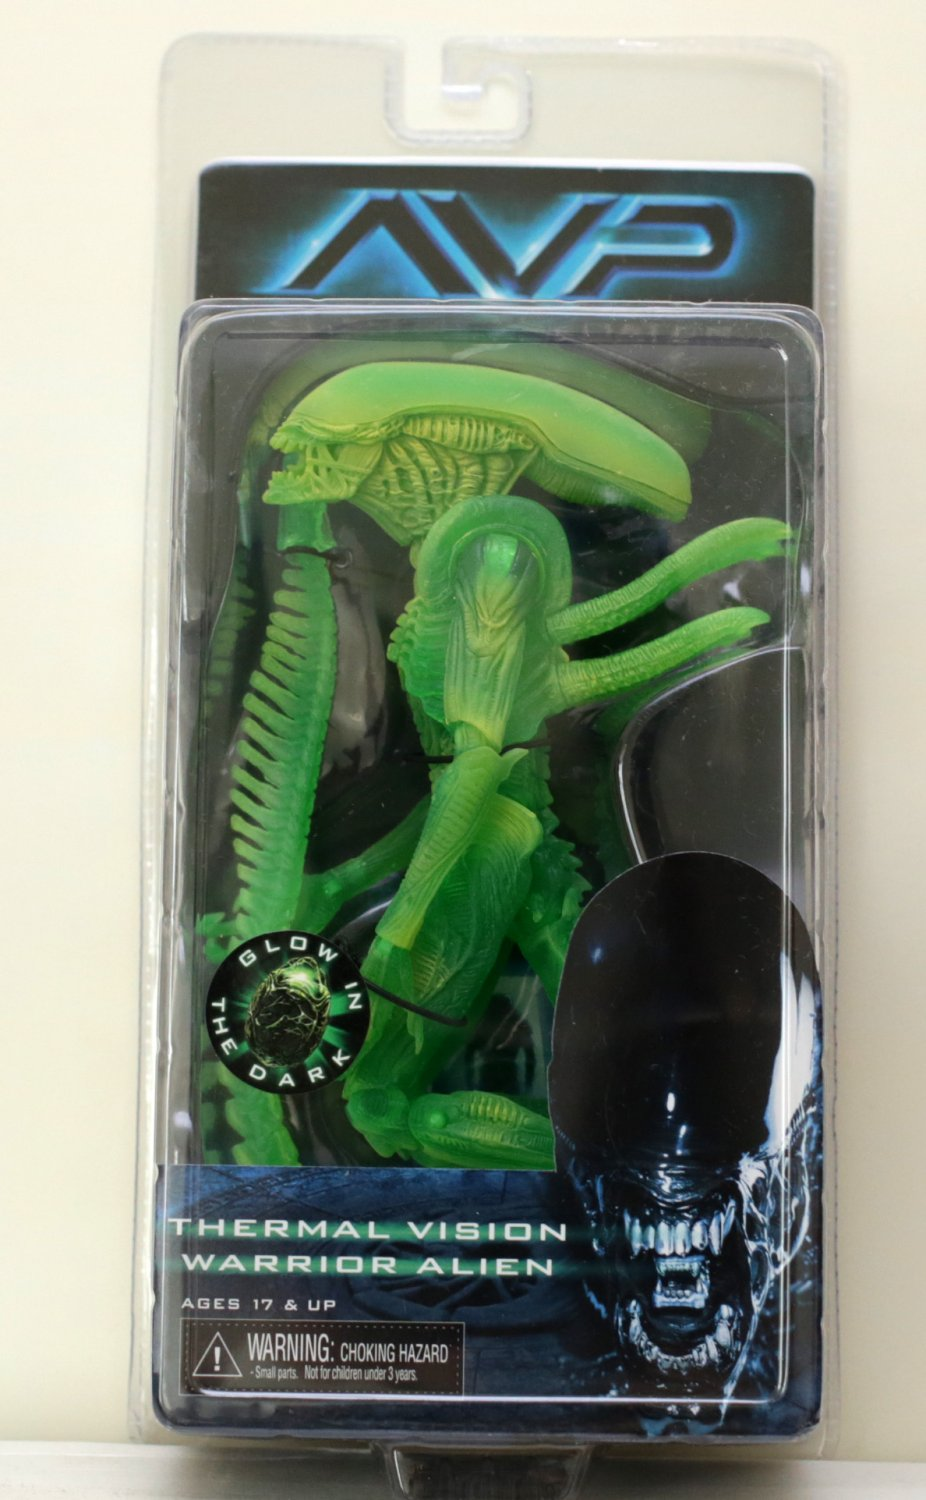 Alien Thermal Vision Warrior action figure NECA (Free Shipping)